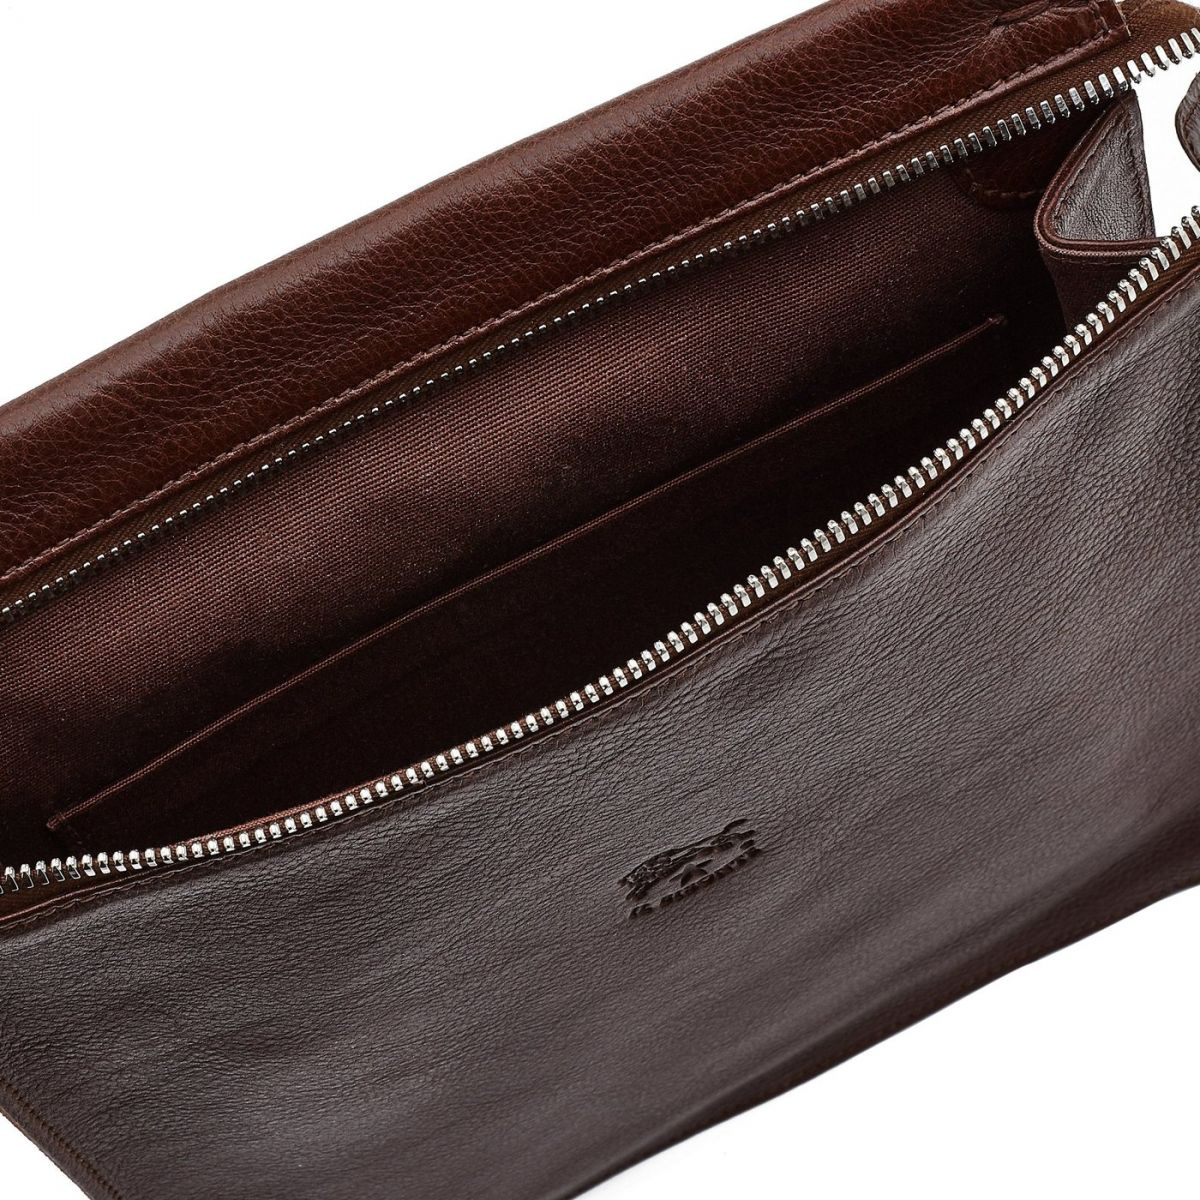 Men's Crossbody Bag in Cowhide Double Leather BCR067 color Brown | Details